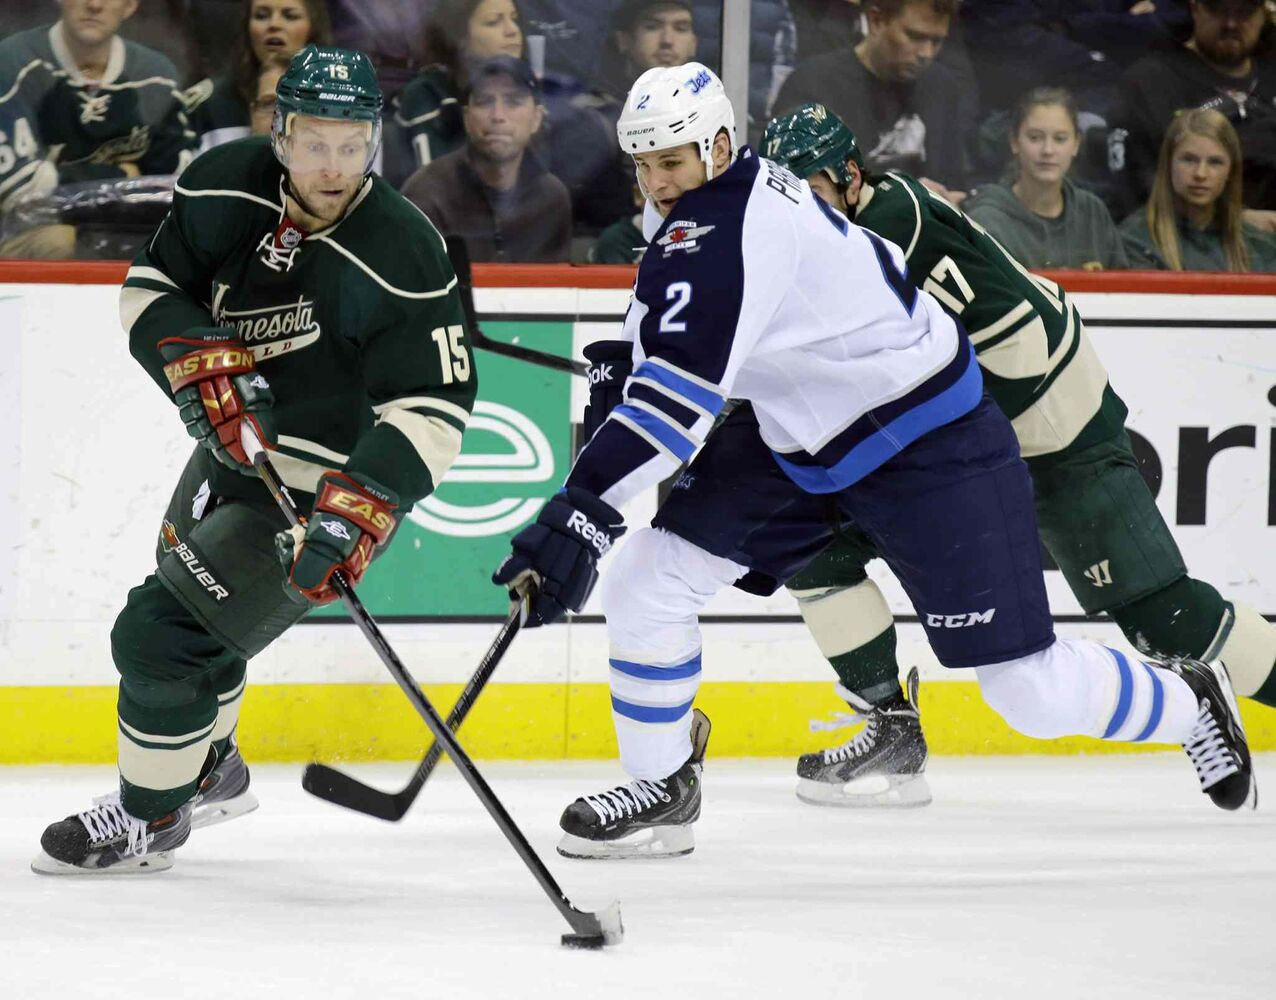 Minnesota Wild left wing Dany Heatley (left) controls the puck as Adam Pardy gives chase during the second period. (Ann Heisenfelt / The Associated Press)